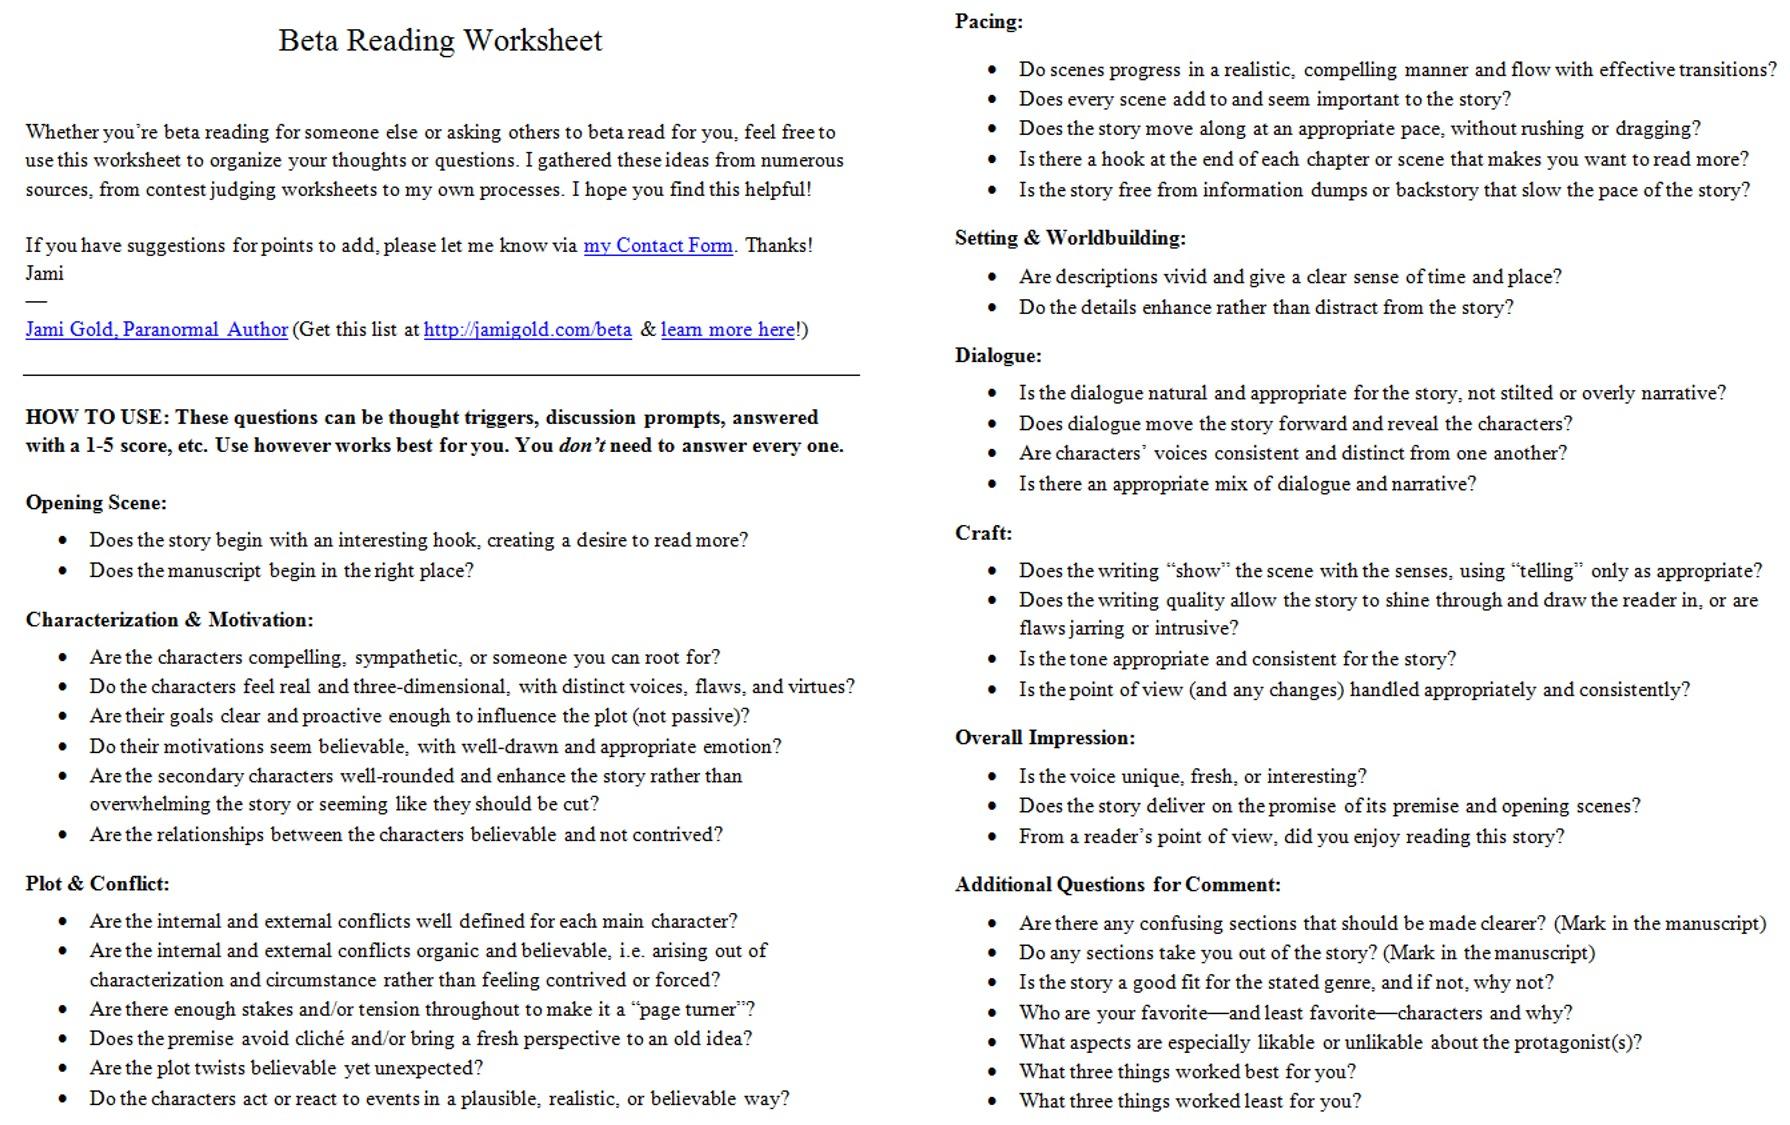 Aldiablosus  Pretty Worksheets For Writers  Jami Gold Paranormal Author With Luxury Screen Shot Of The Twopage Beta Reading Worksheet With Charming Fitt Worksheet Also Hand Printing Worksheets In Addition Ing Endings Worksheet And Write Algebraic Expressions Worksheets As Well As Kindergarten Length Worksheets Additionally Analogue Clock Worksheets From Jamigoldcom With Aldiablosus  Luxury Worksheets For Writers  Jami Gold Paranormal Author With Charming Screen Shot Of The Twopage Beta Reading Worksheet And Pretty Fitt Worksheet Also Hand Printing Worksheets In Addition Ing Endings Worksheet From Jamigoldcom